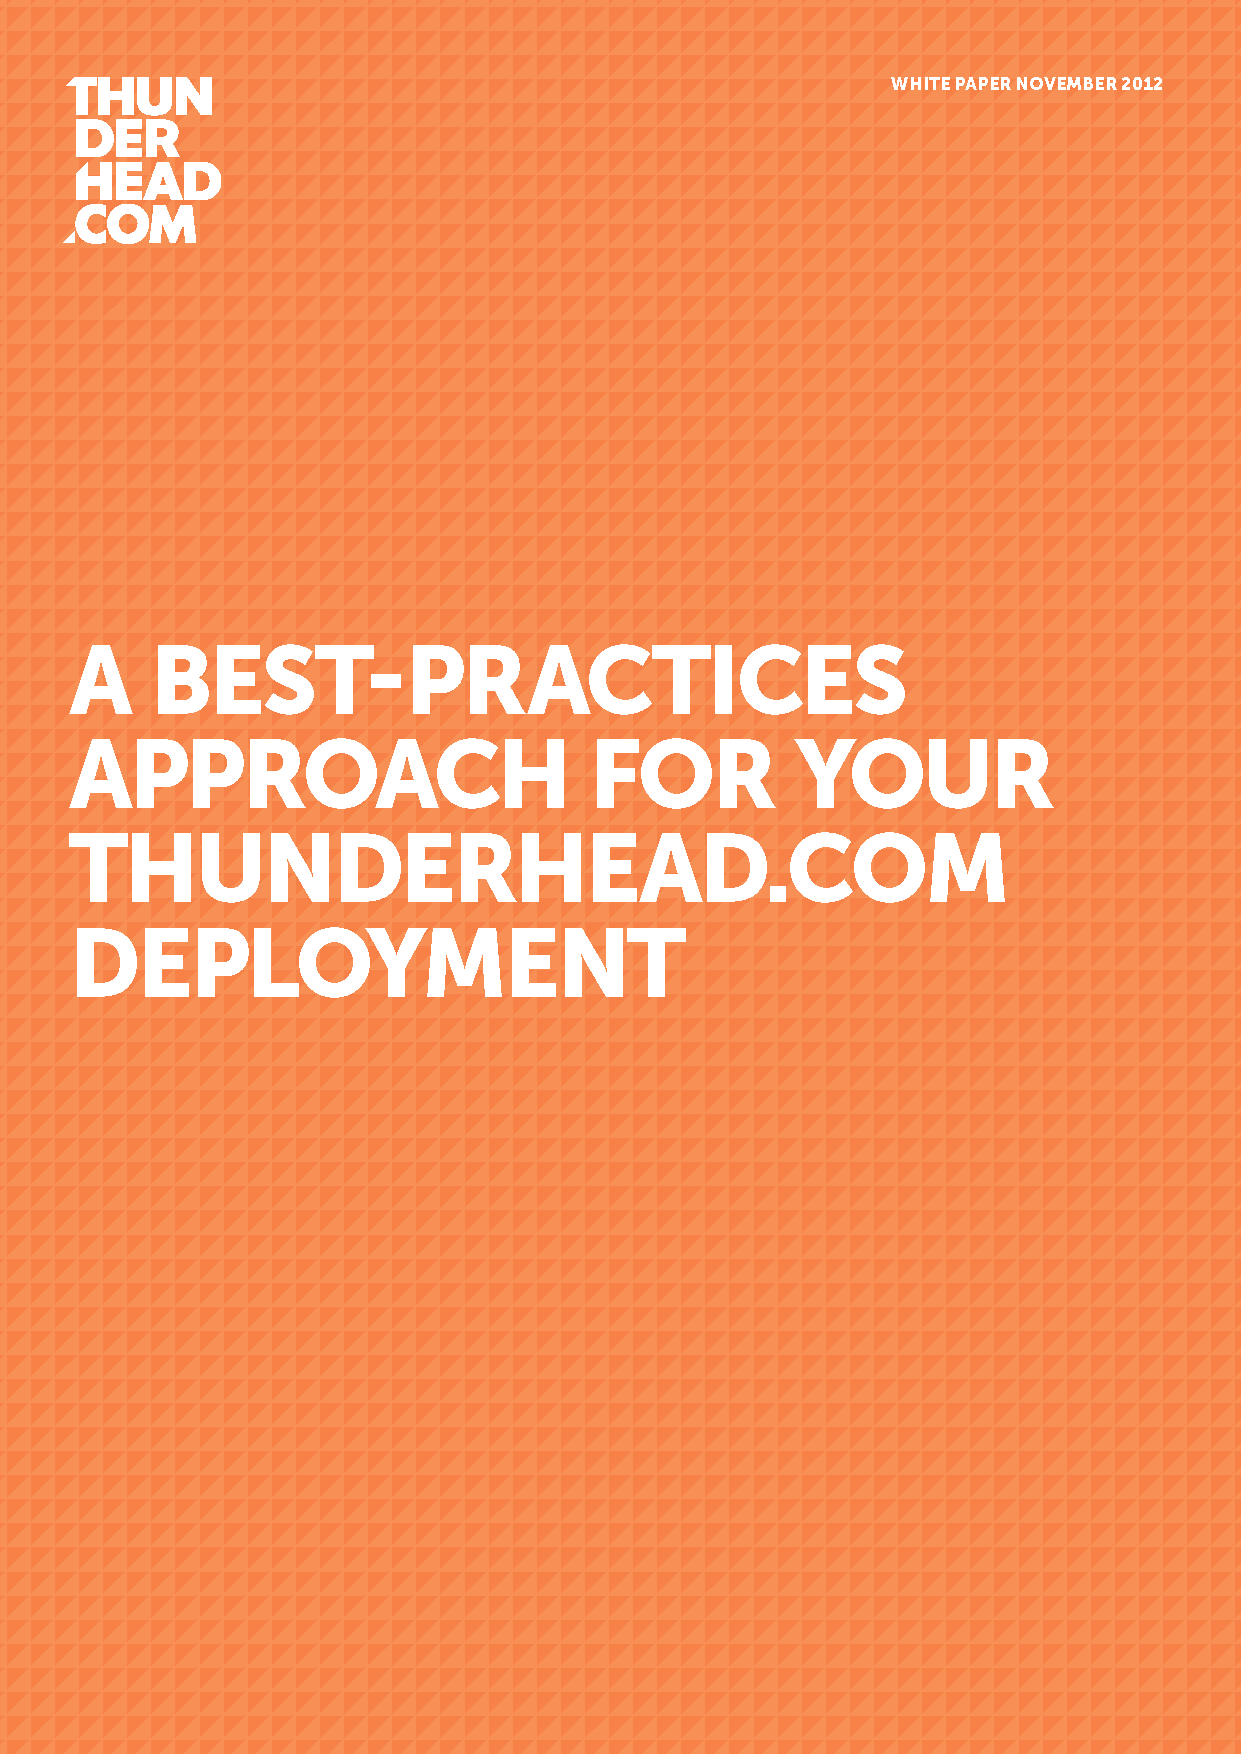 Thunderhead.com Centers of Excellence White Paper Cover